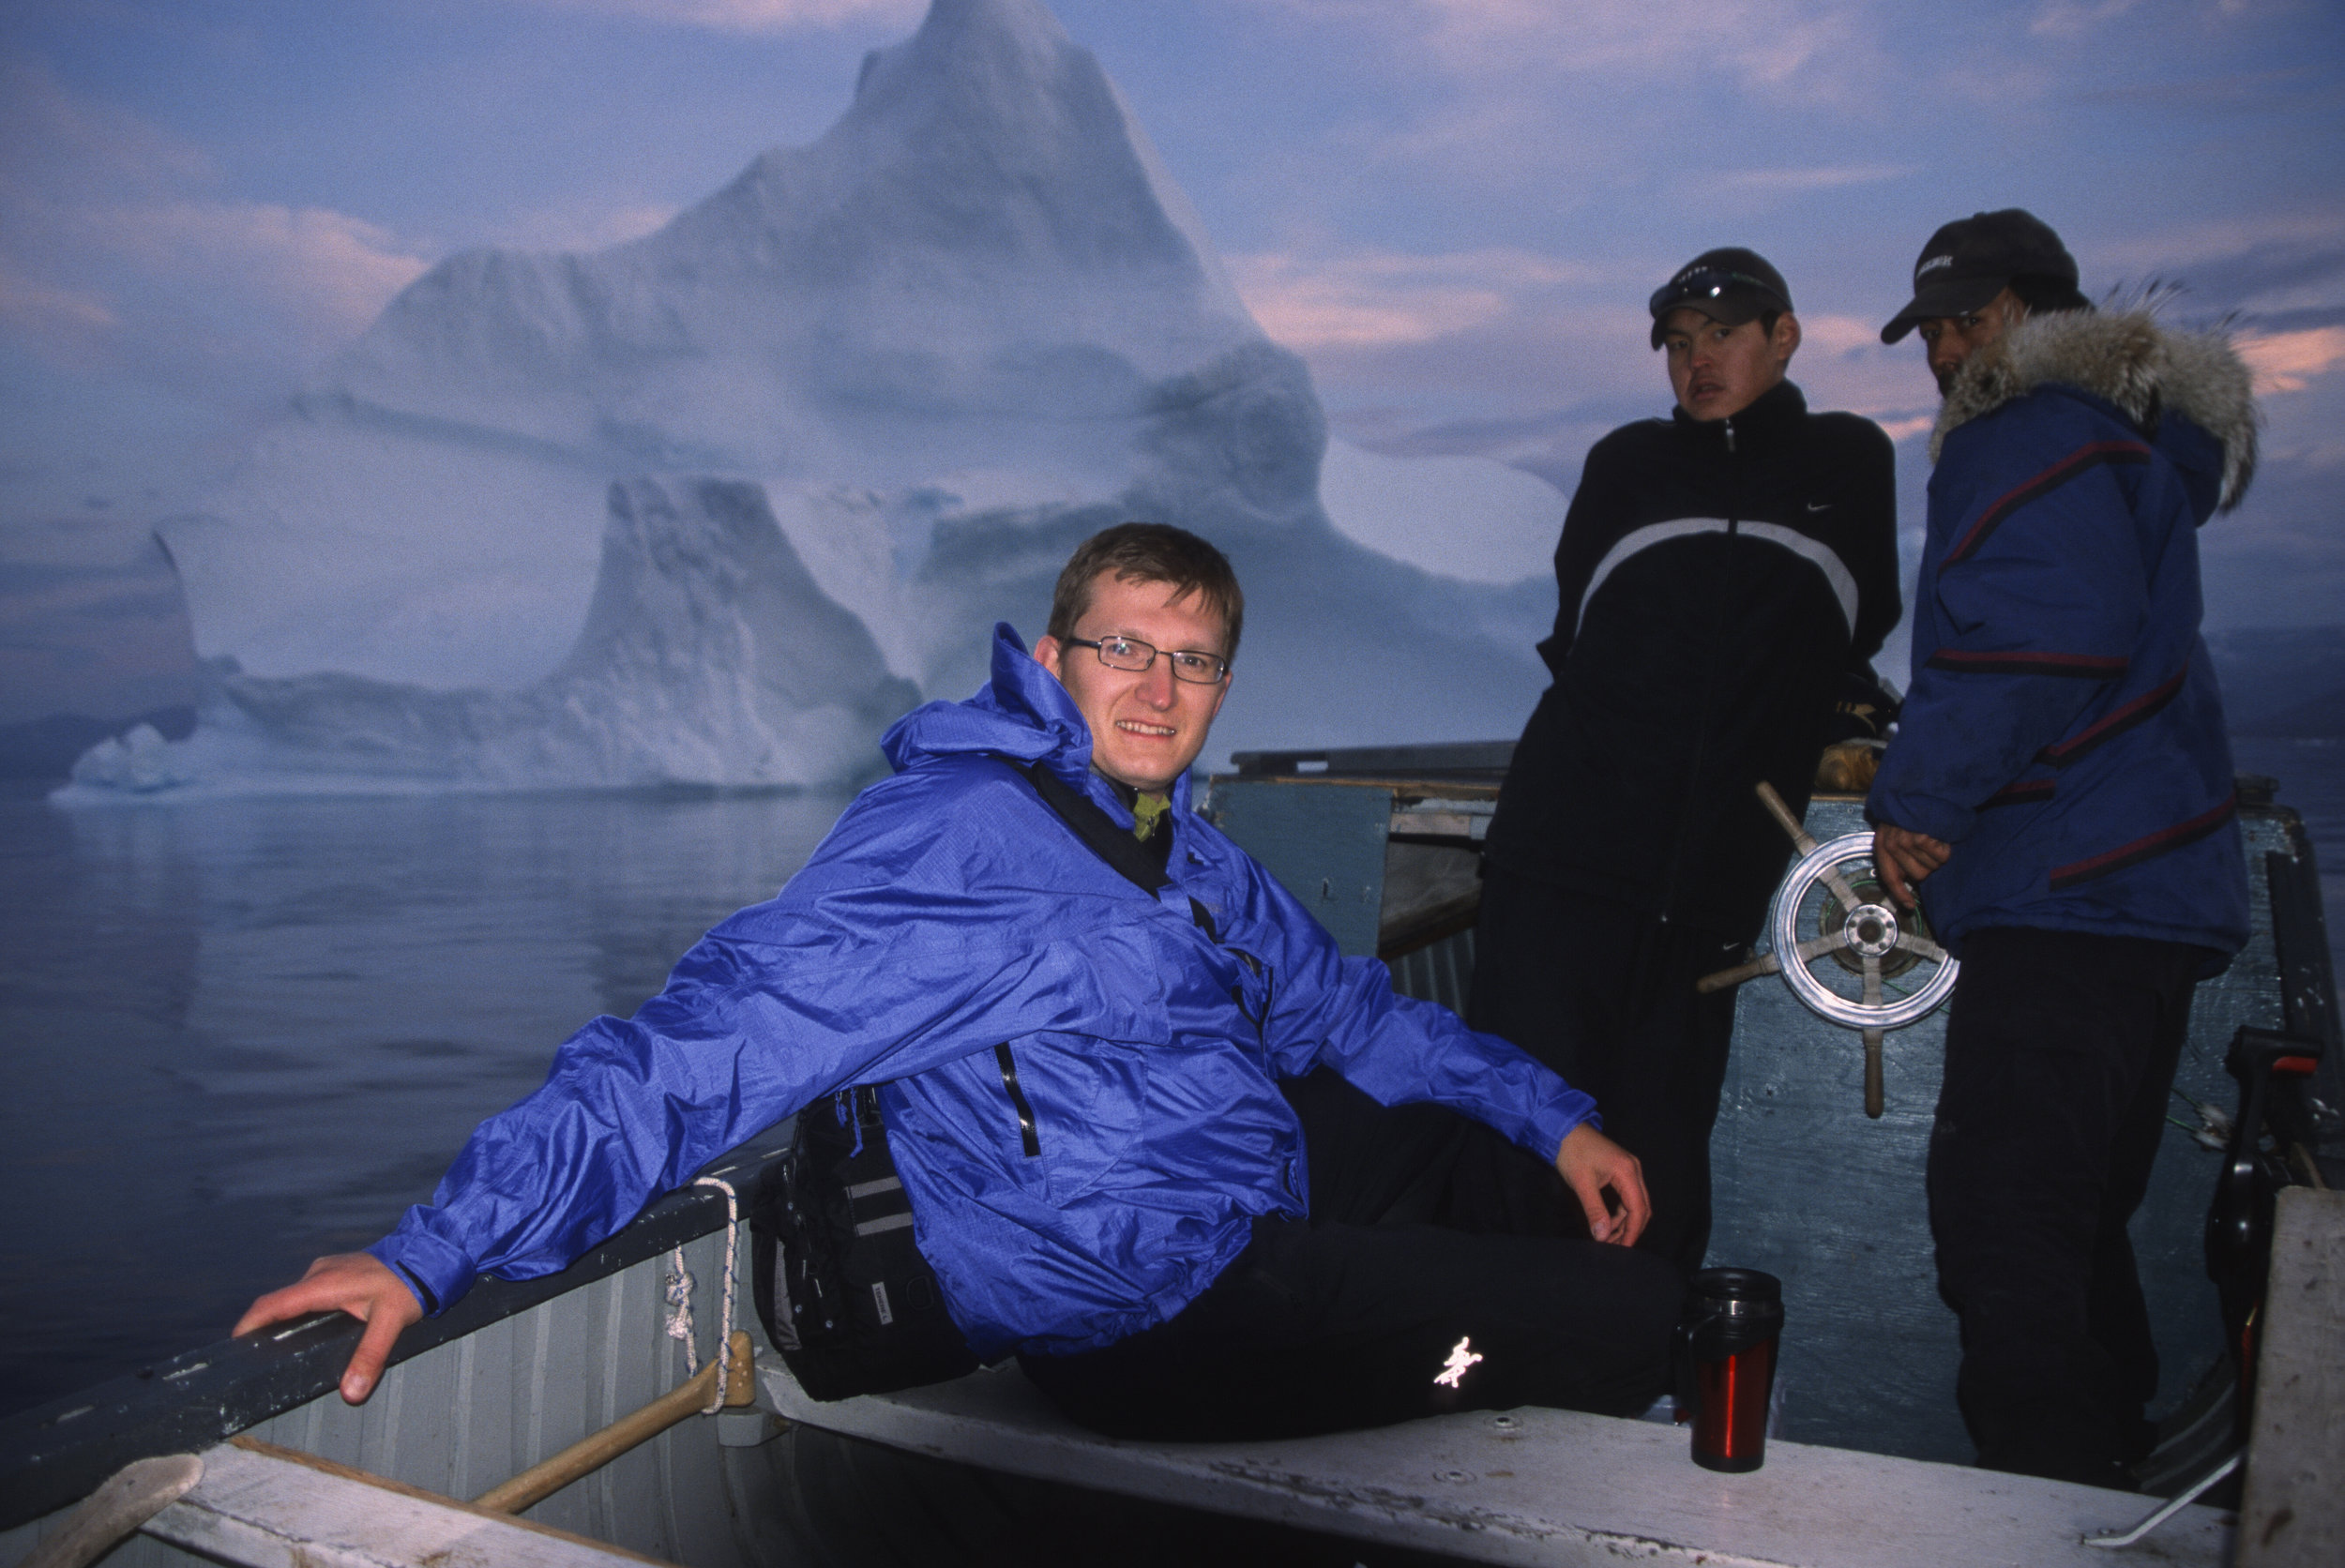 In 2003, my first trip to the Canadian Arctic. I met these Inuit who invited me to go seal hunting with them during the Arctic night.